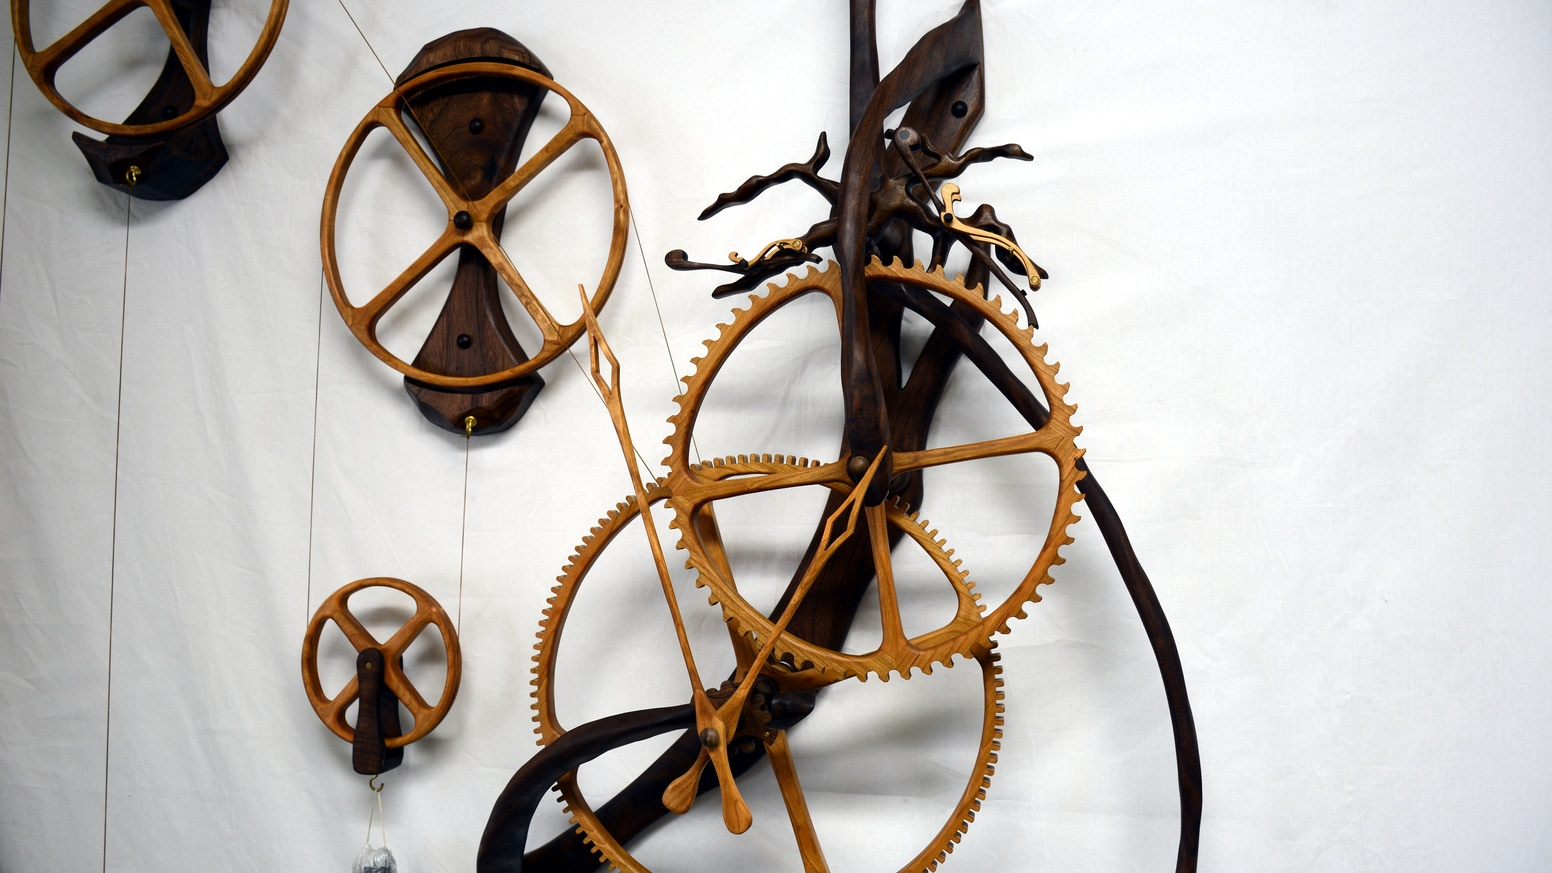 Clockwright Large Scale Analogue Time Machines By Rick Hale